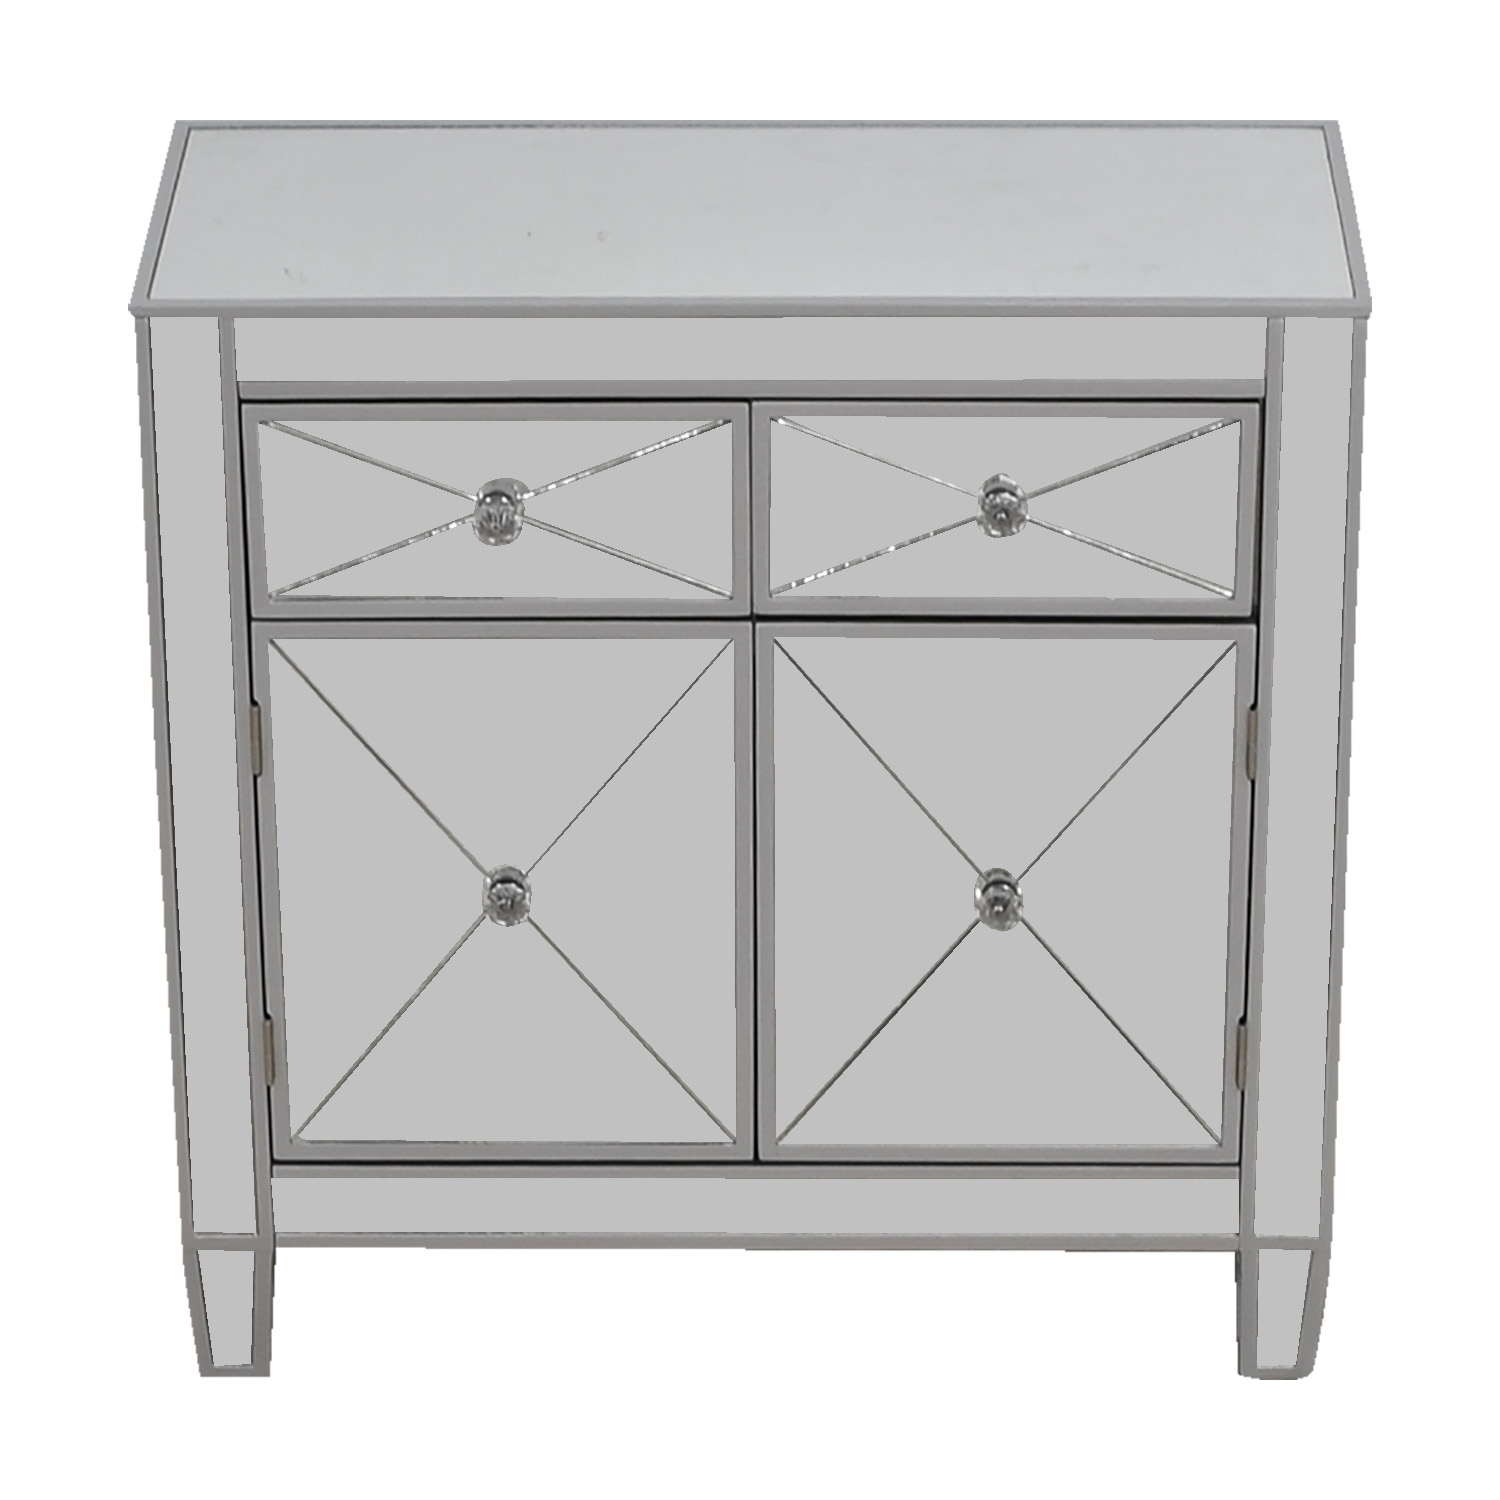 Wayfair Wayfair Two-Drawer Mirrored Dresser dimensions